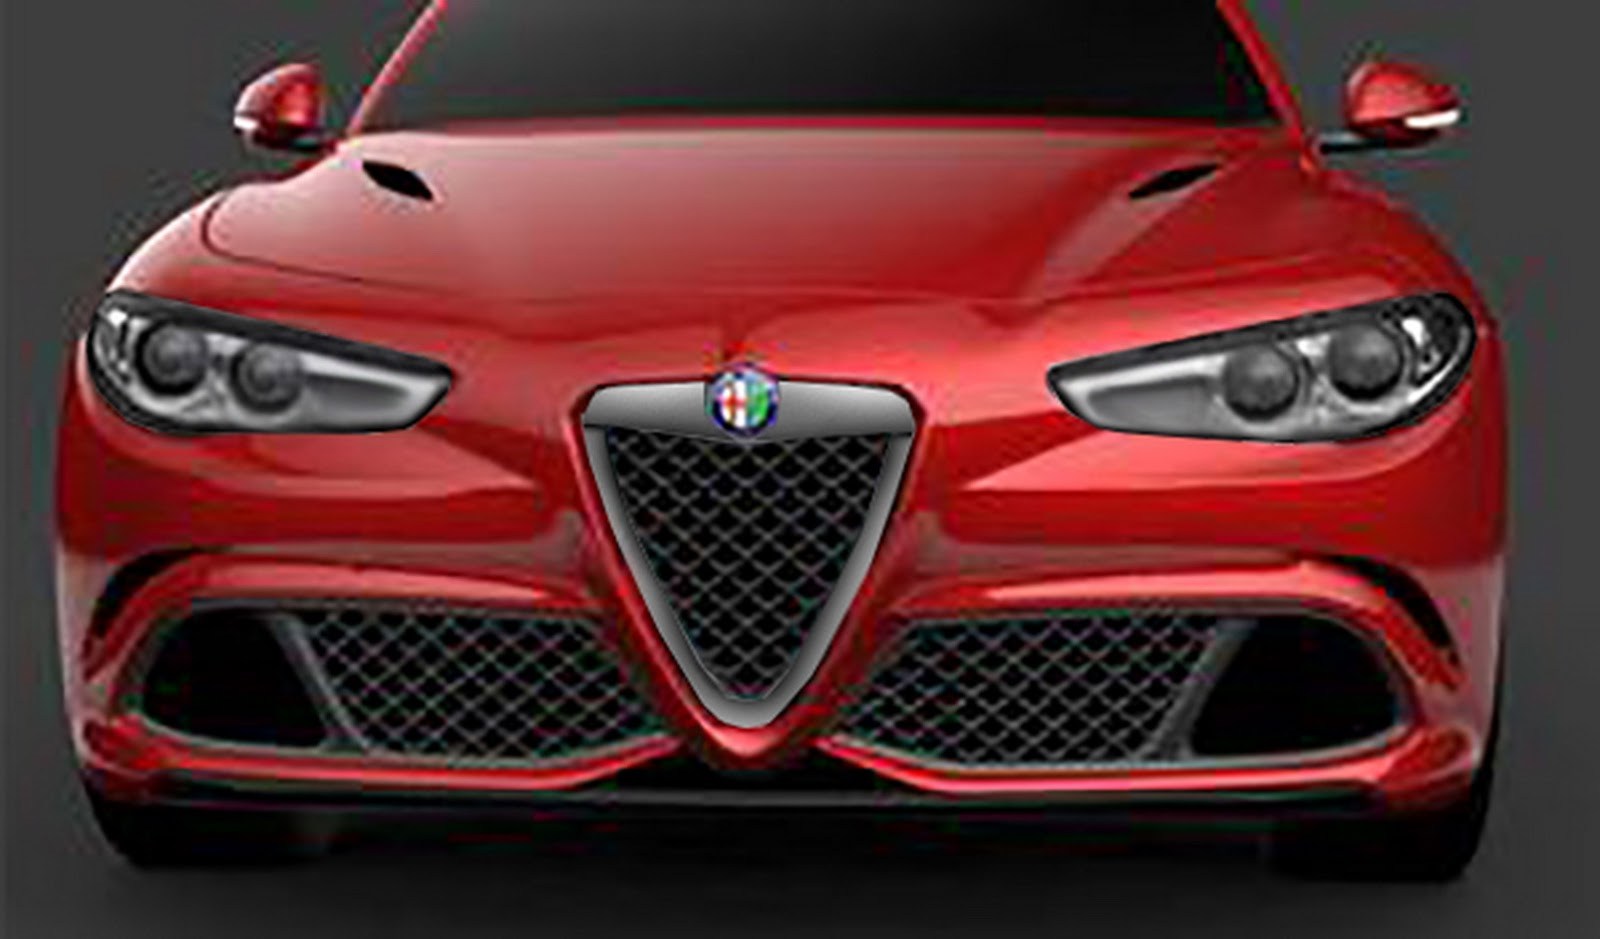 New Alfa Romeo Giulia Kind Of Gives A Bmw Vibe In These